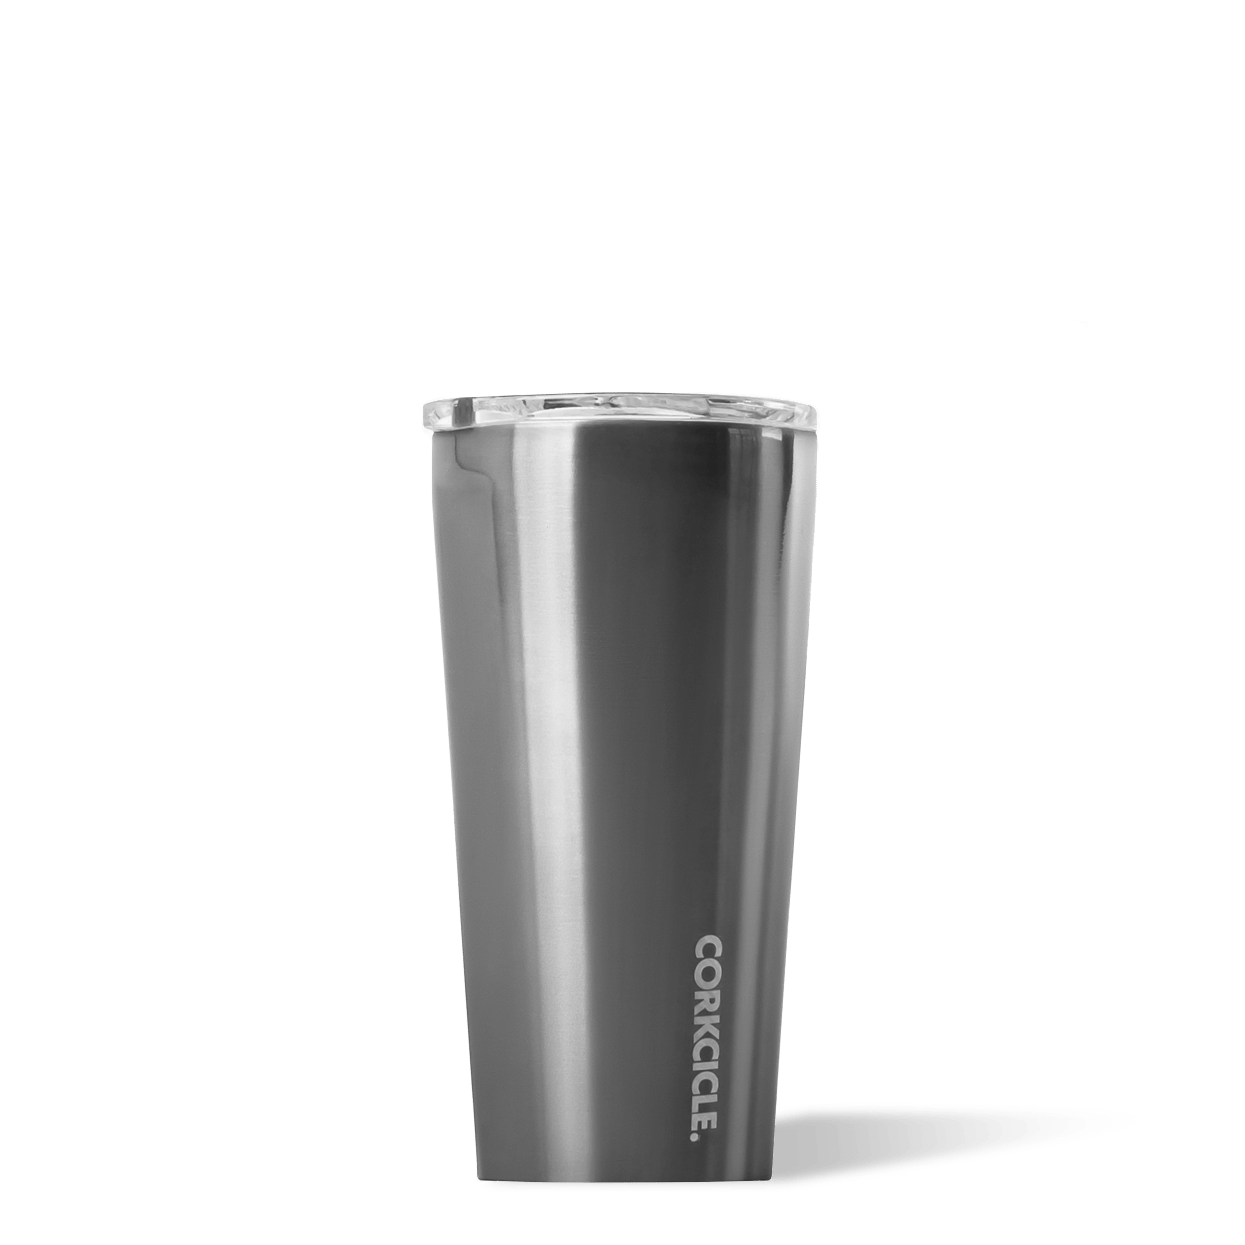 Corkcicle 16oz Gunmetal Metallic Tumbler Side View.